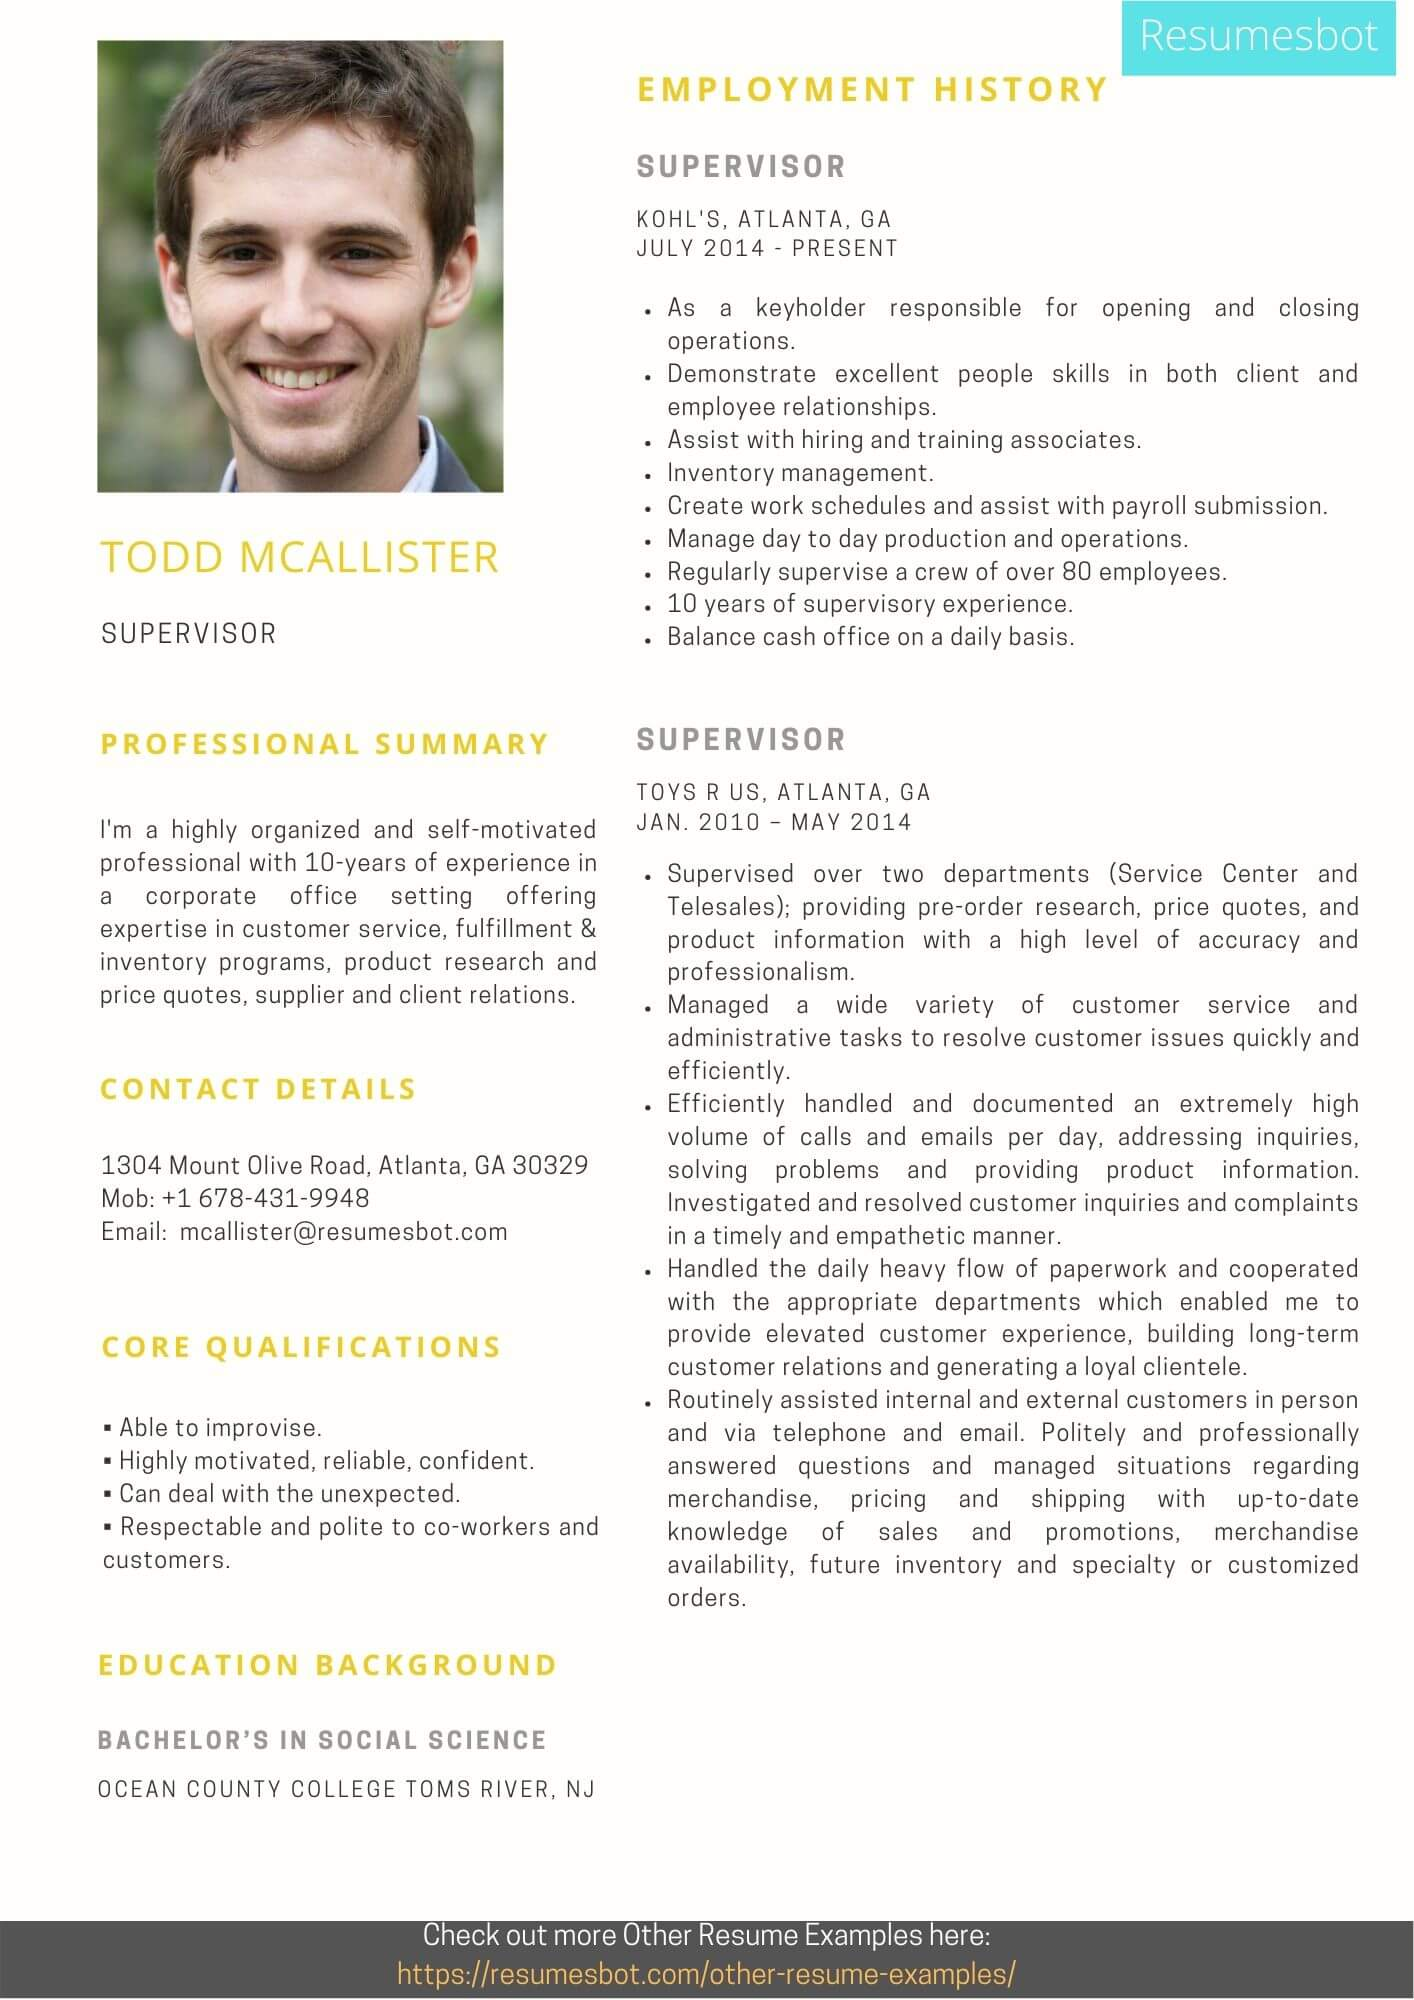 supervisor resume samples and tips pdf resumes bot objective example fonts software Resume Supervisor Resume Objective